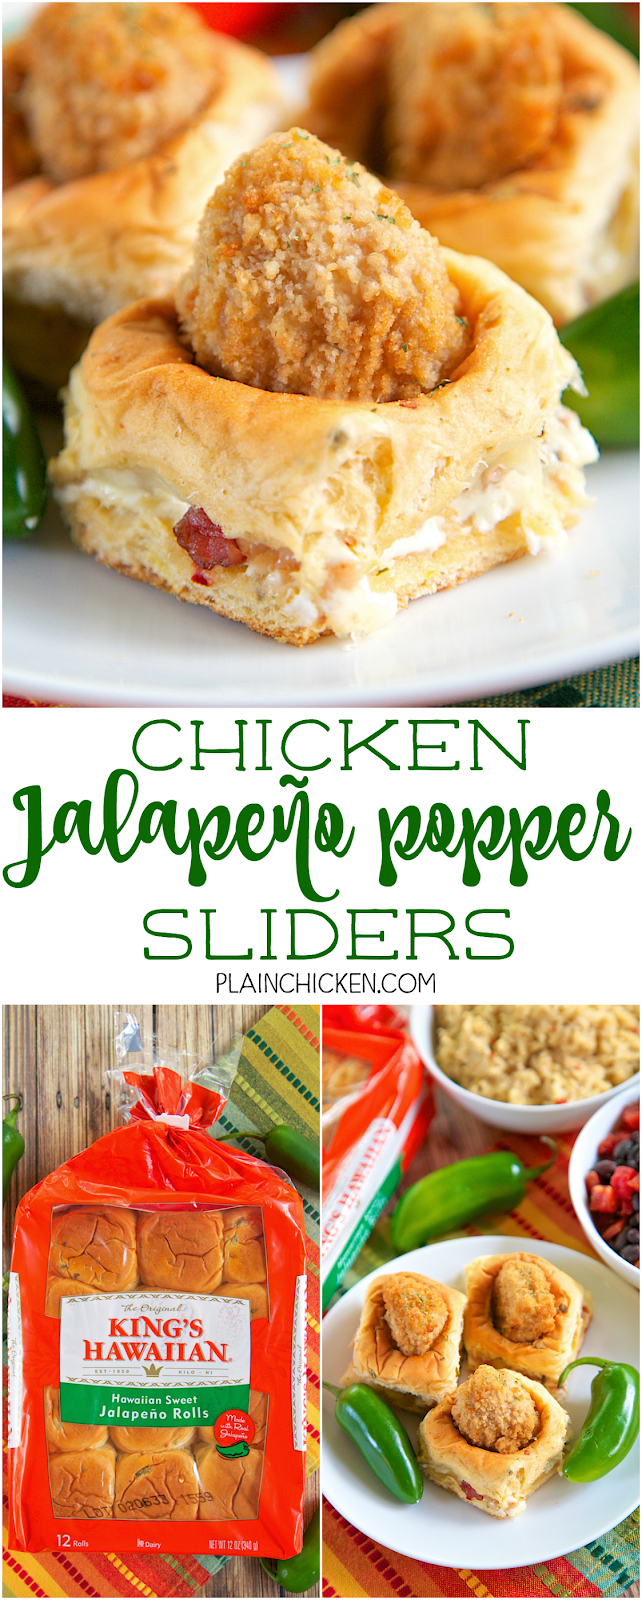 Chicken Jalapeno Popper Sliders - SO fun! Only 5 ingredients! King's Hawaiian Jalapeño Rolls stuffed with cream cheese, bacon, monterey jack cheese and frozen chicken chunks. These sandwiches are CRAZY good! I couldn't stop eating them! Great for a party or easy lunch or dinner.